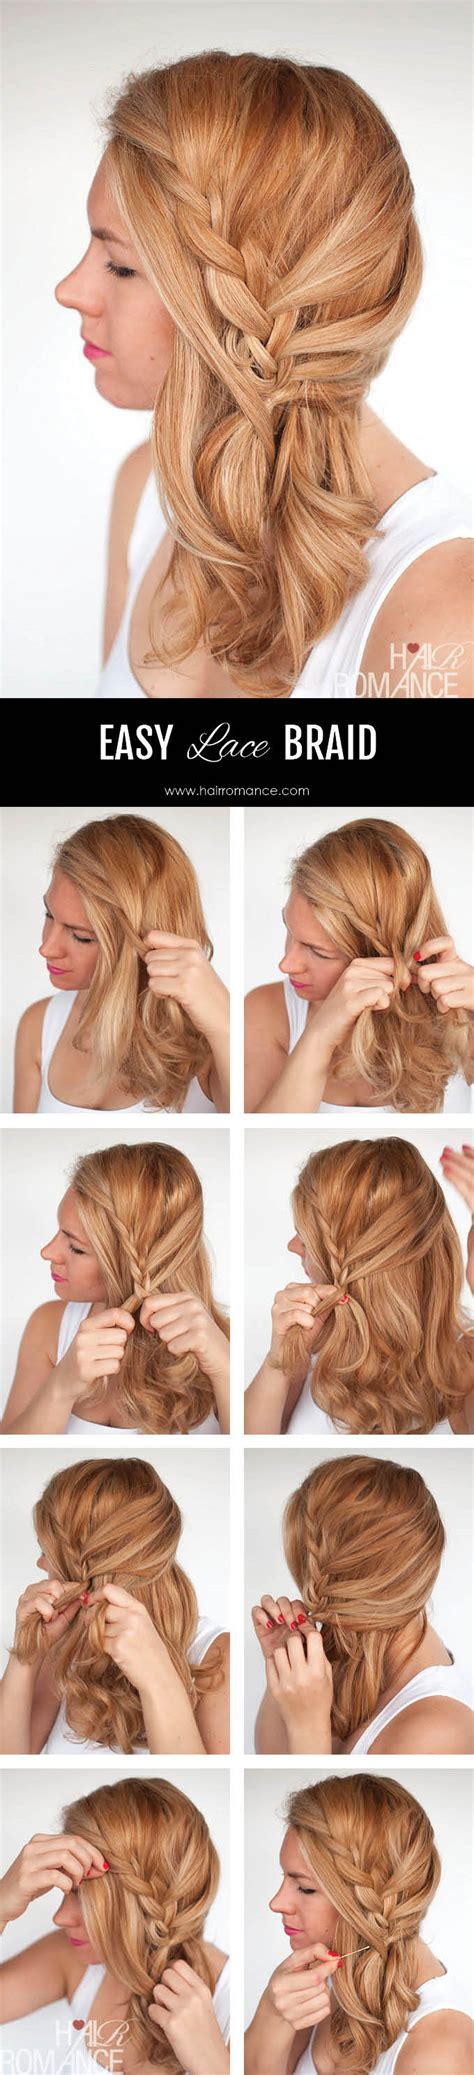 hairstyles to the side tutorial easy lace braid the side swept hairstyle tutorial hair